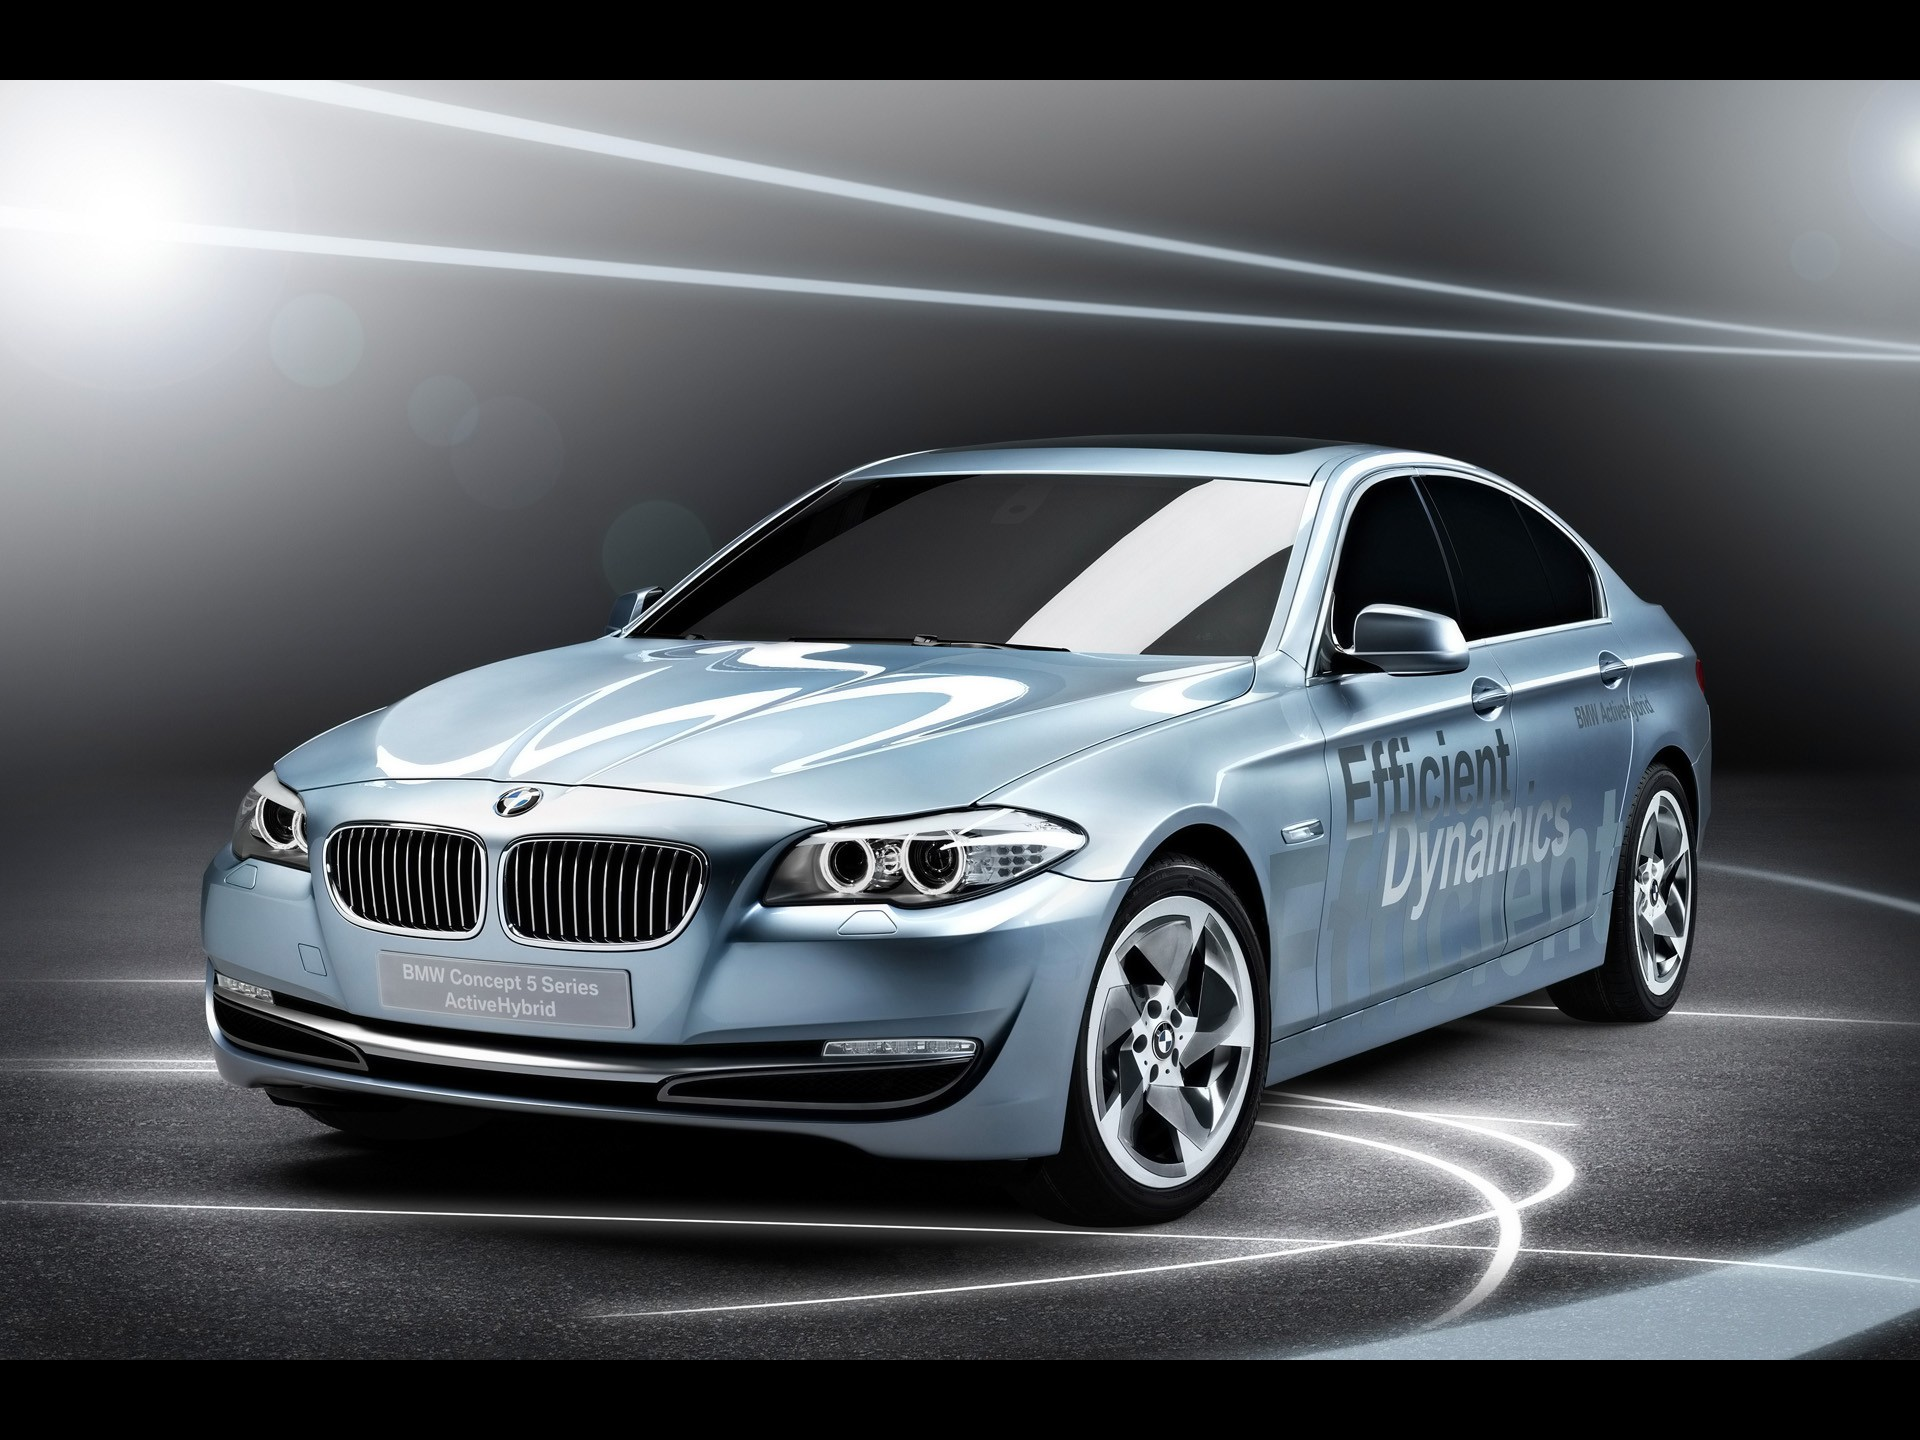 bmw concept 5 series activehybrid-engine